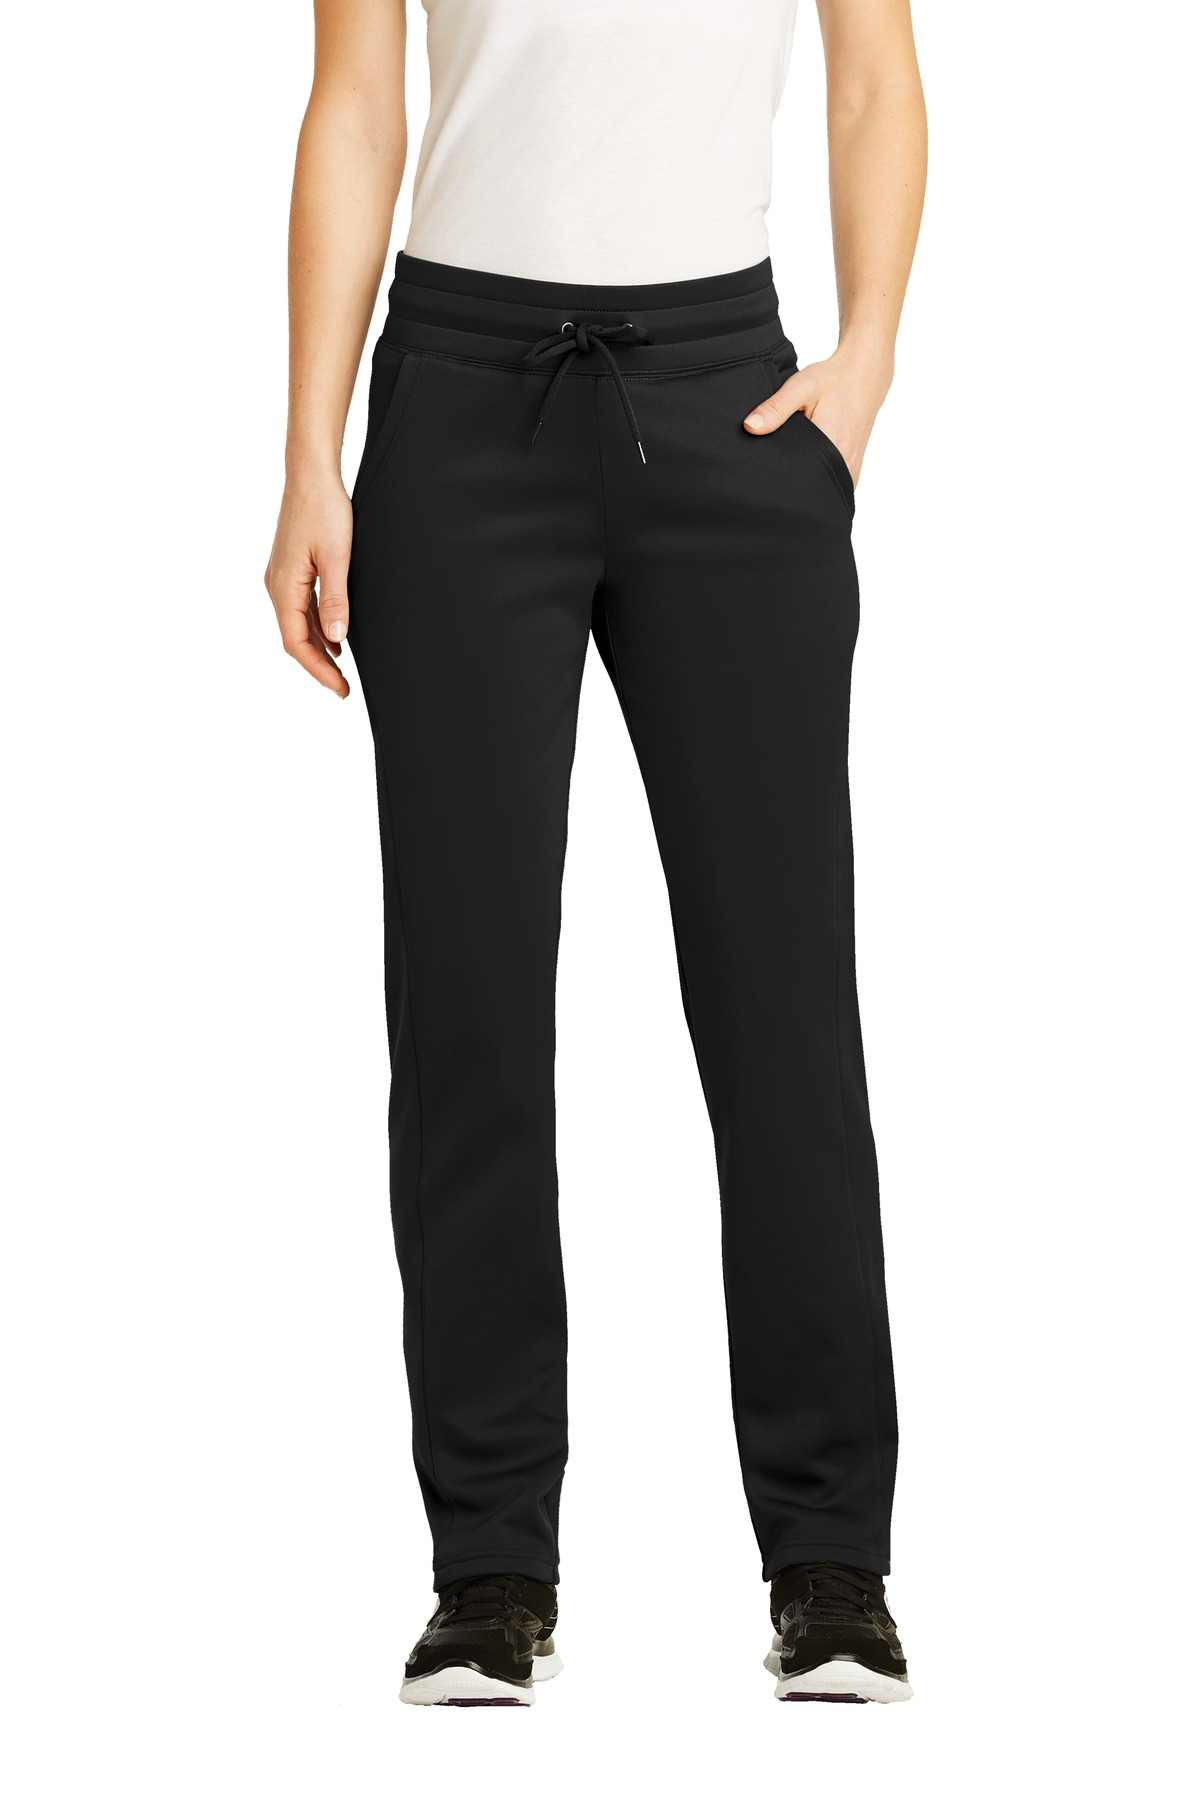 Sport-Tek ®  Ladies Sport-Wick ®  Fleece Pant. LST237 - Black